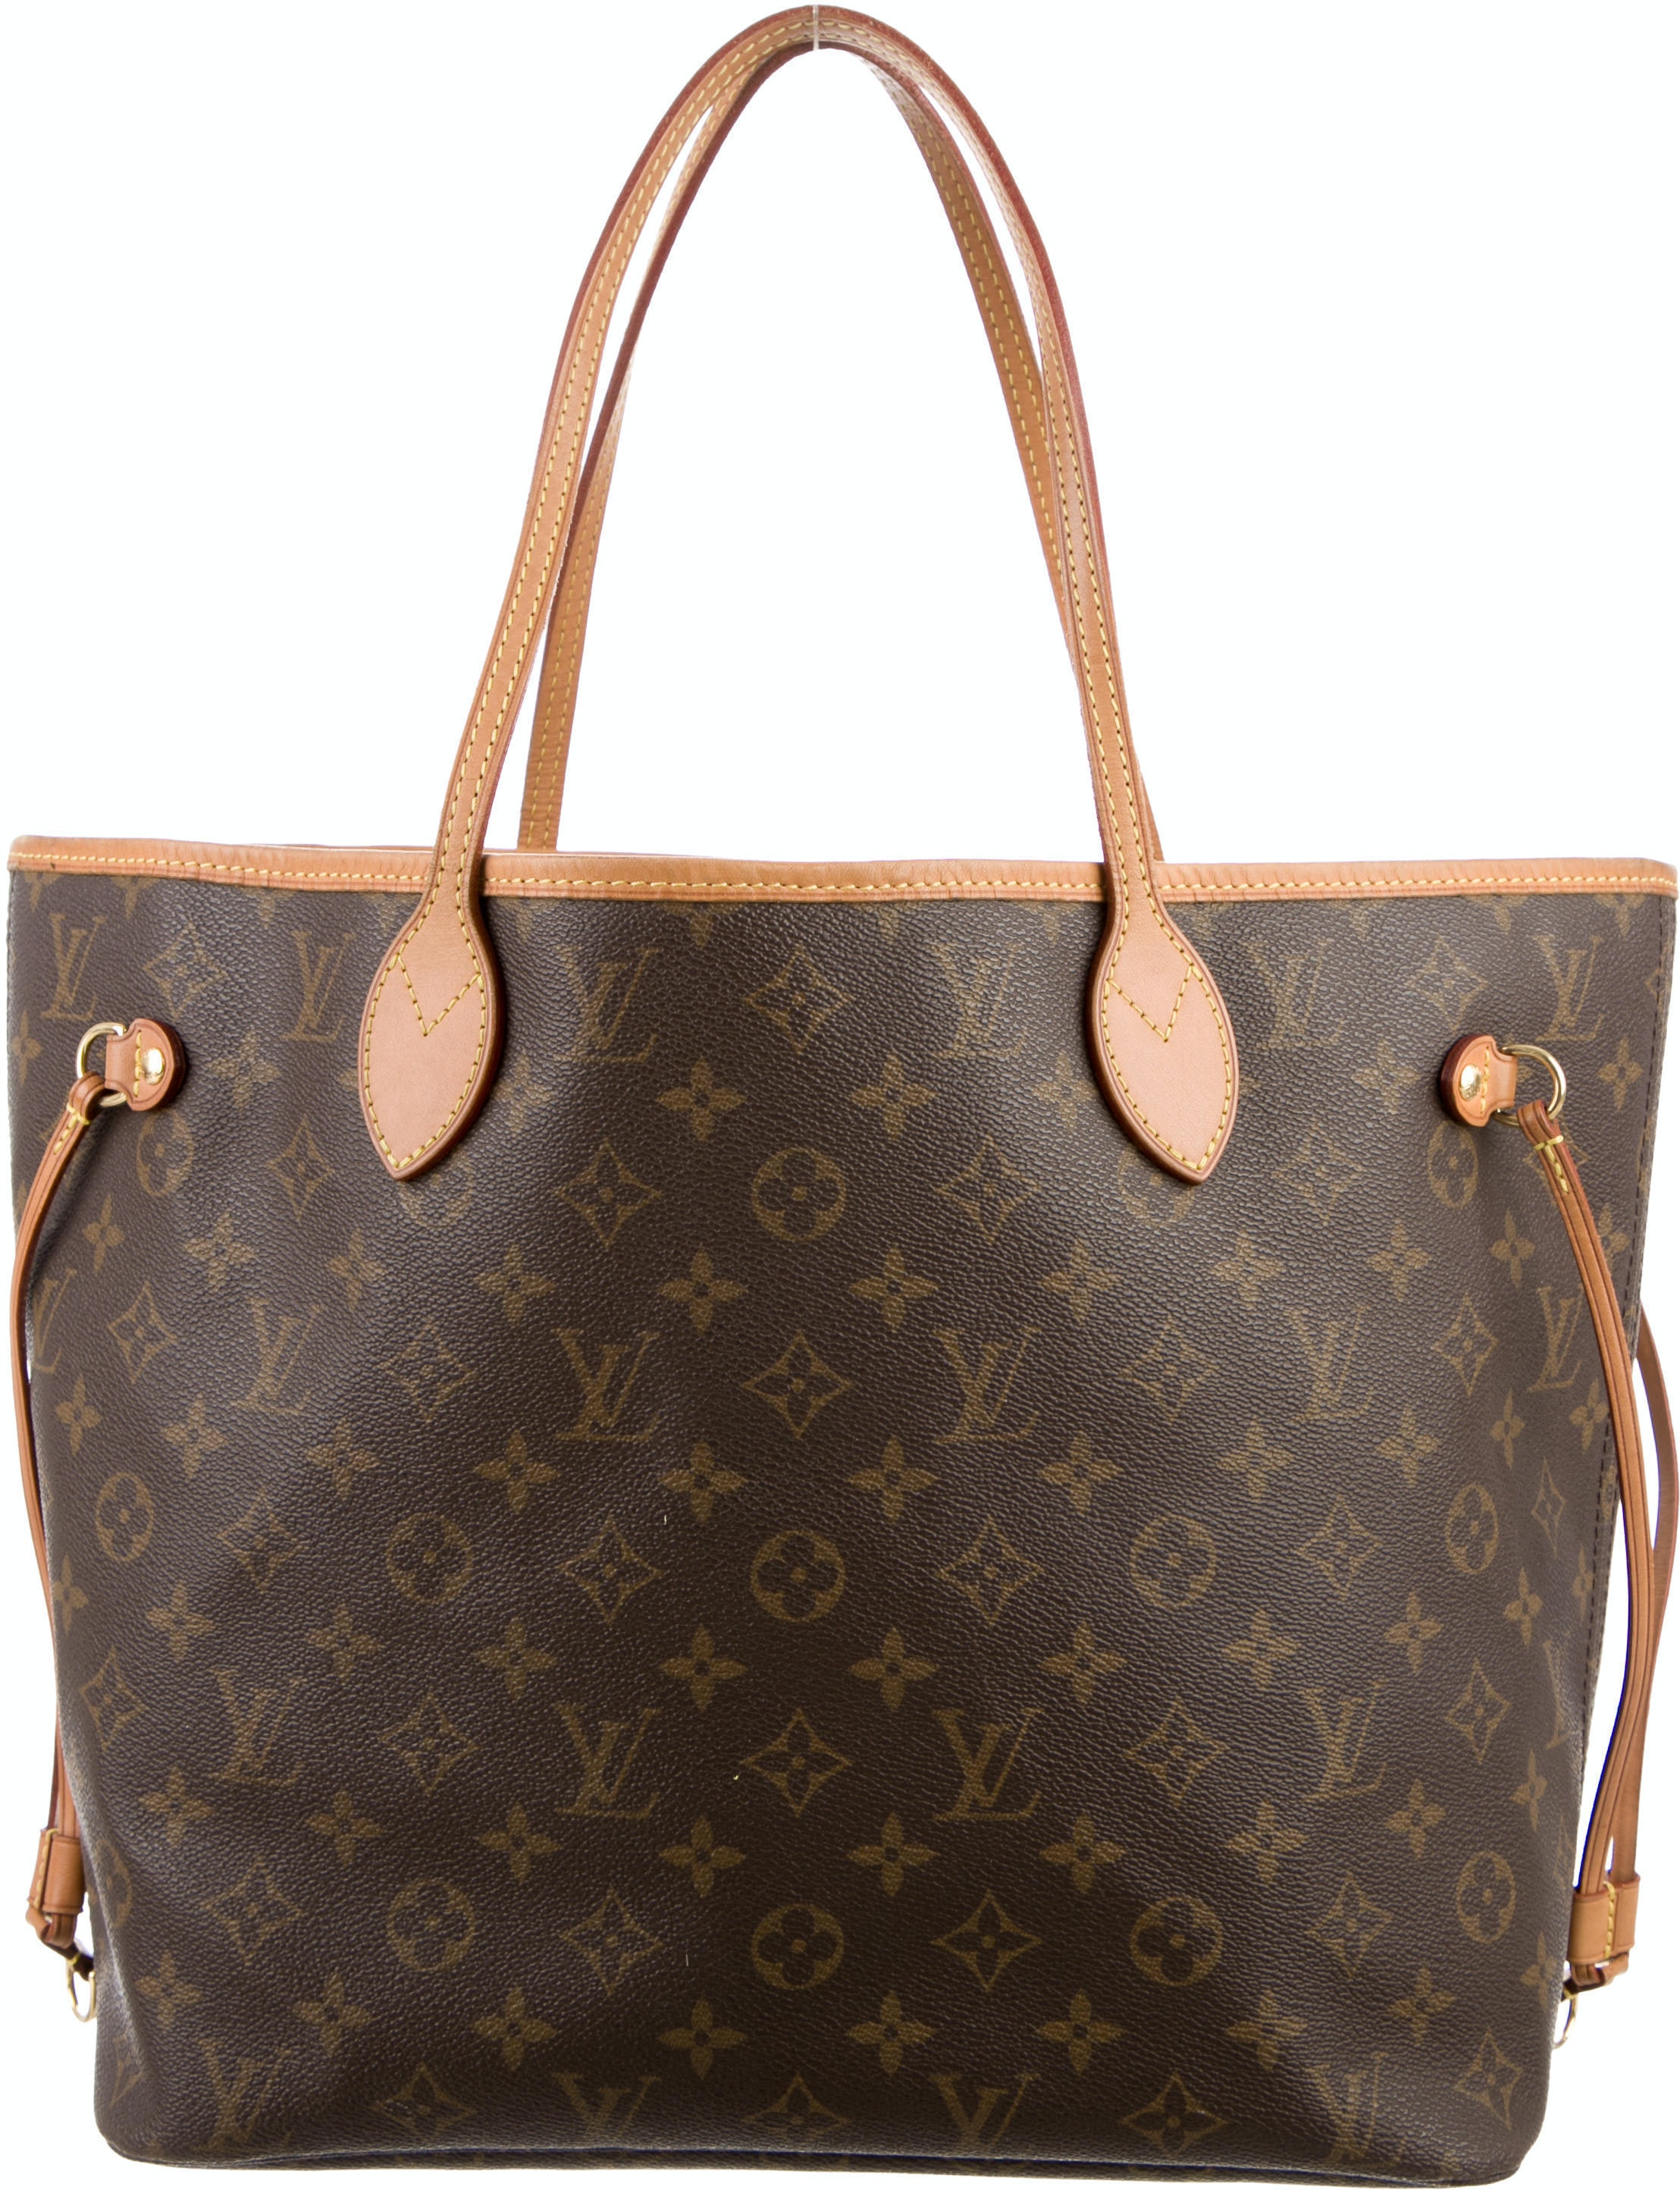 Louis Vuitton Neverfull Monogram MM Brown